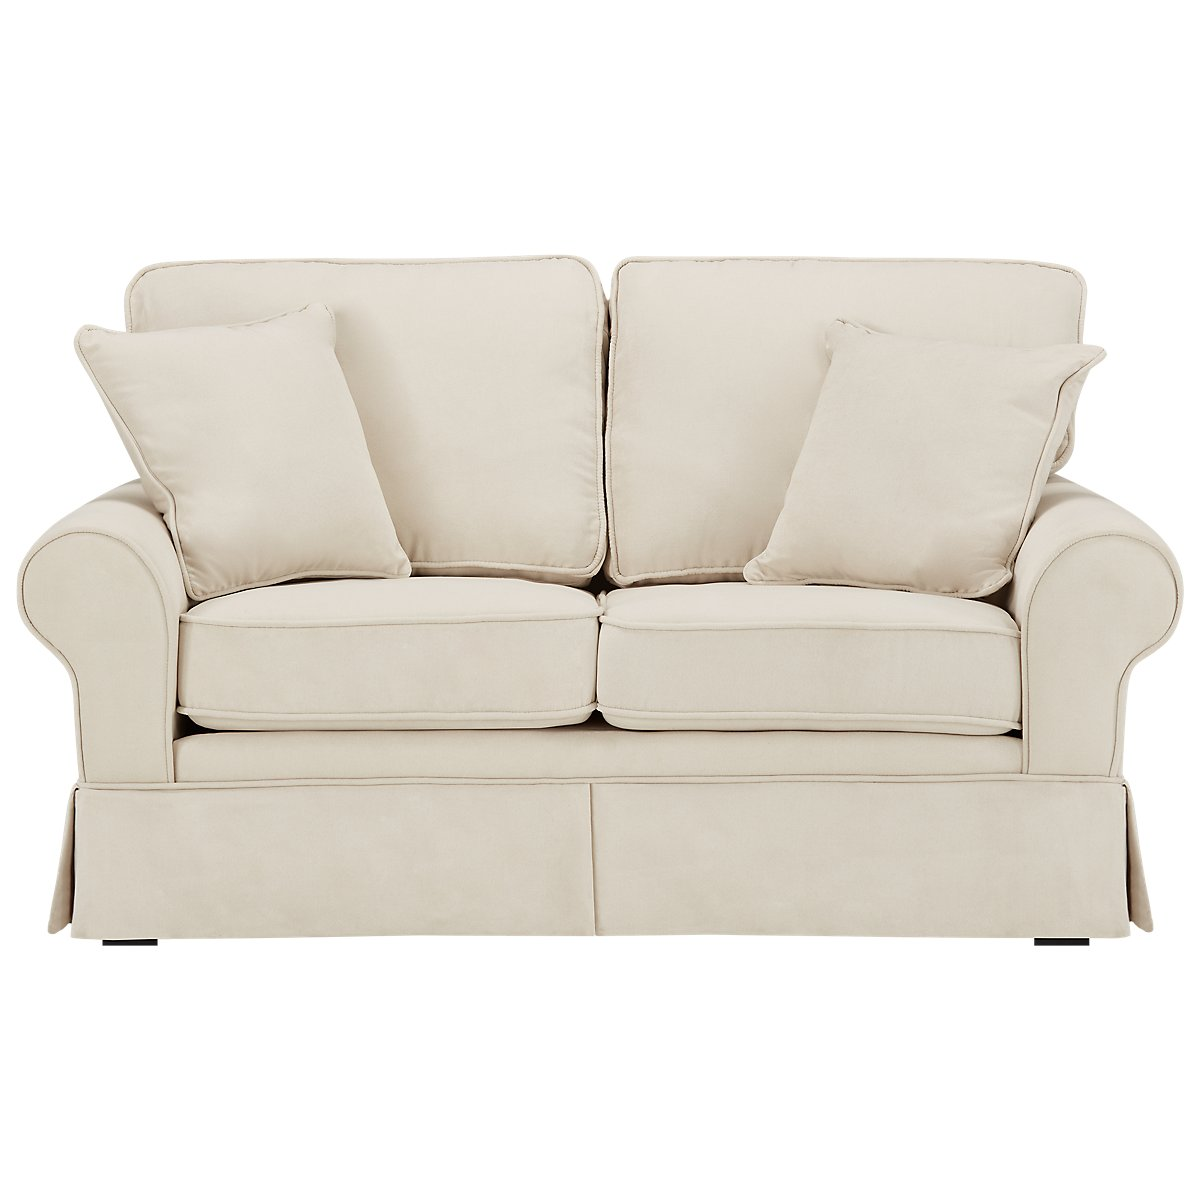 Reese White Fabric Loveseat